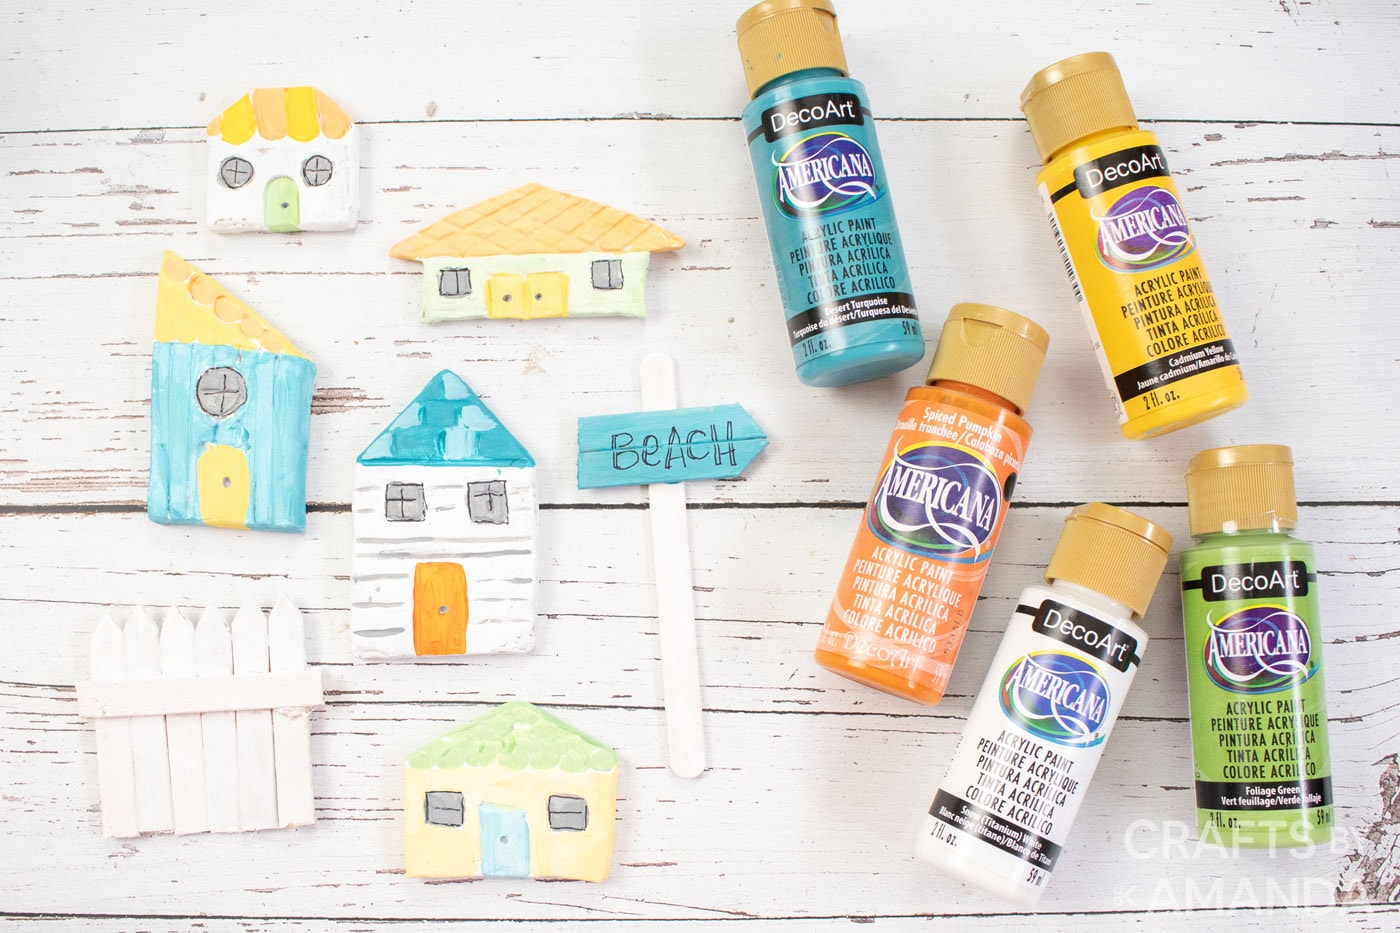 coastal painted clay houses and popsicle stick fence. Decoart paints